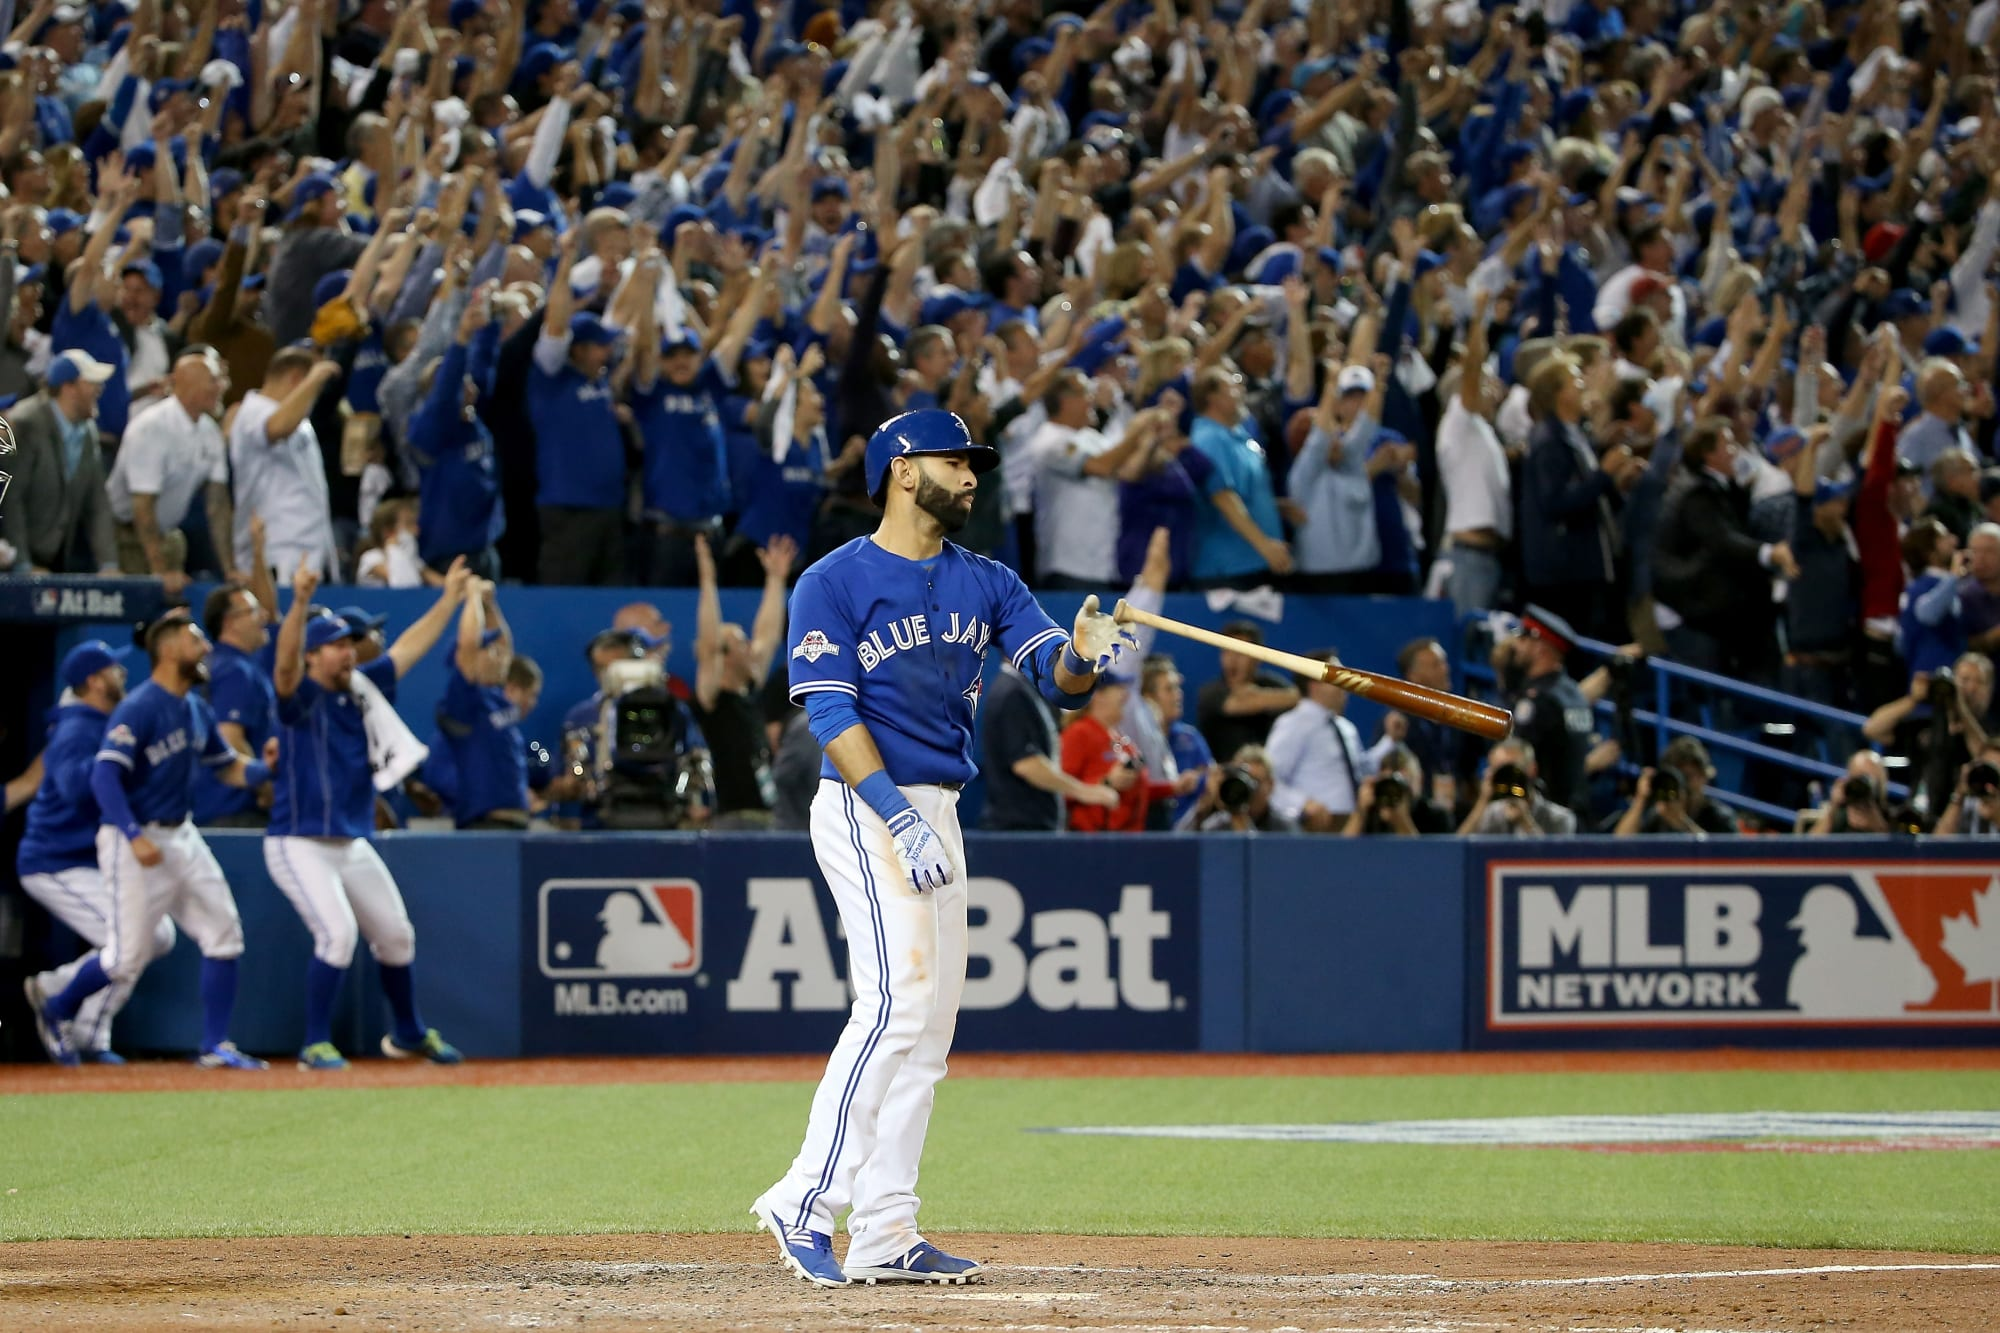 Blue Jays Will The Rivalry With The Rangers Carry On